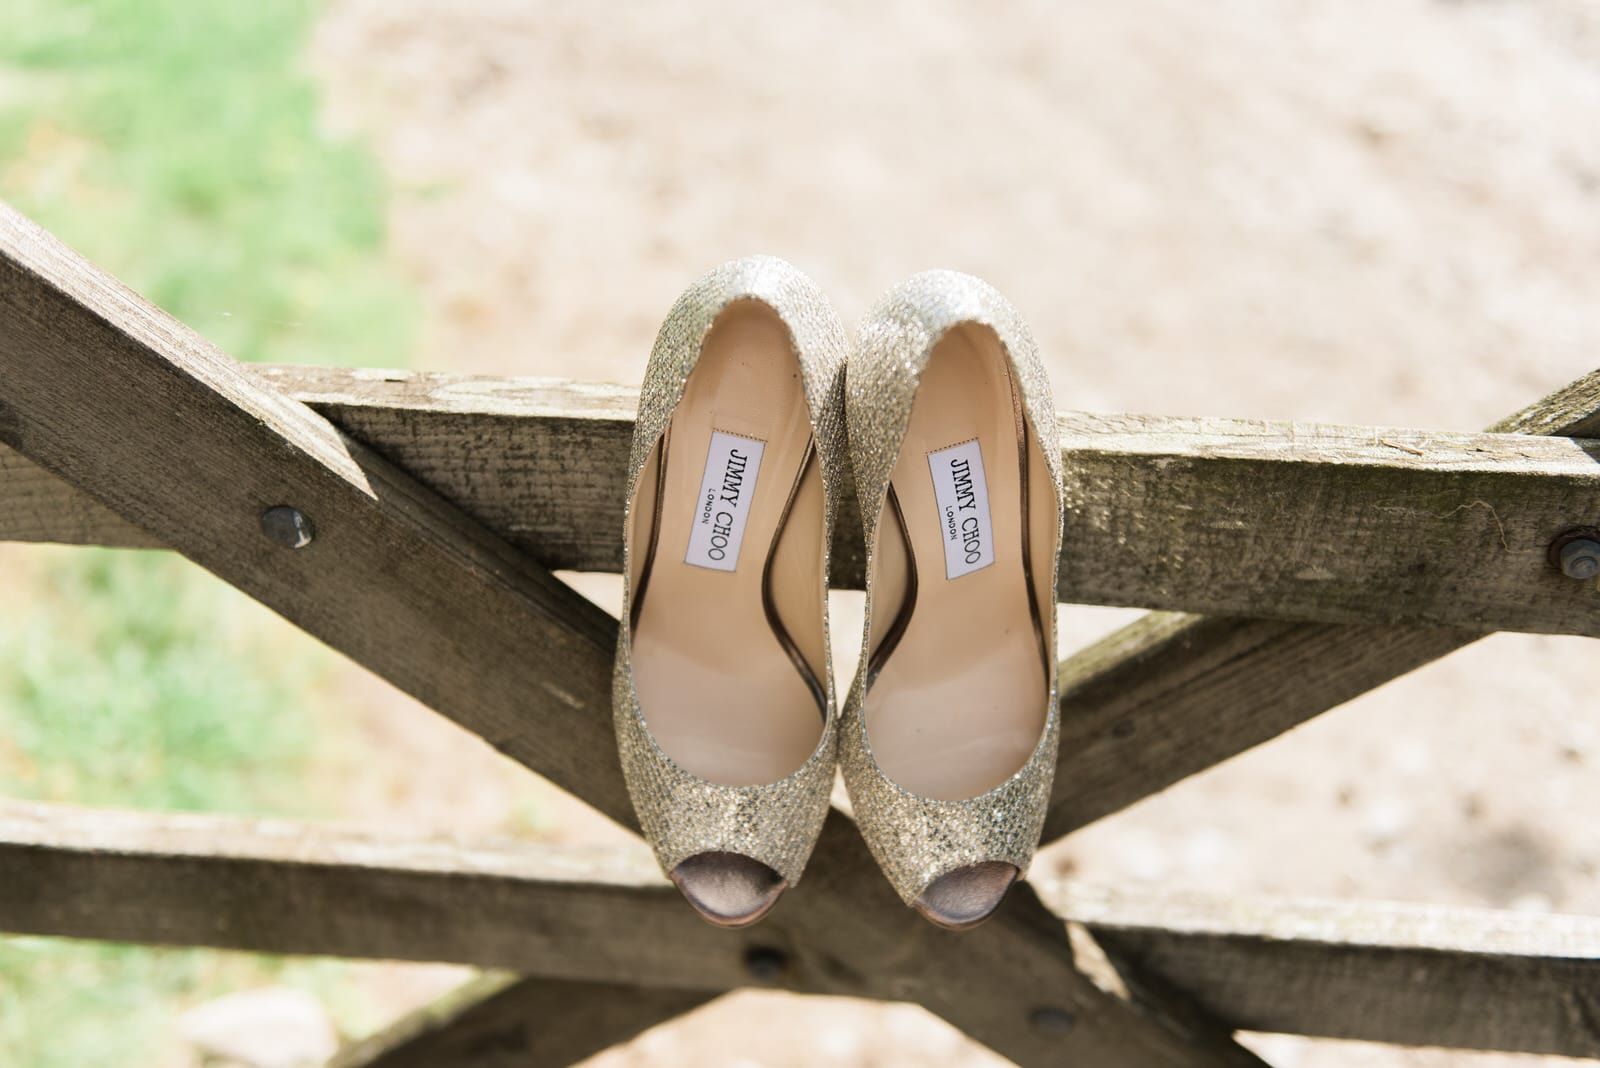 Jimmy choo shoes at cressbrook hall